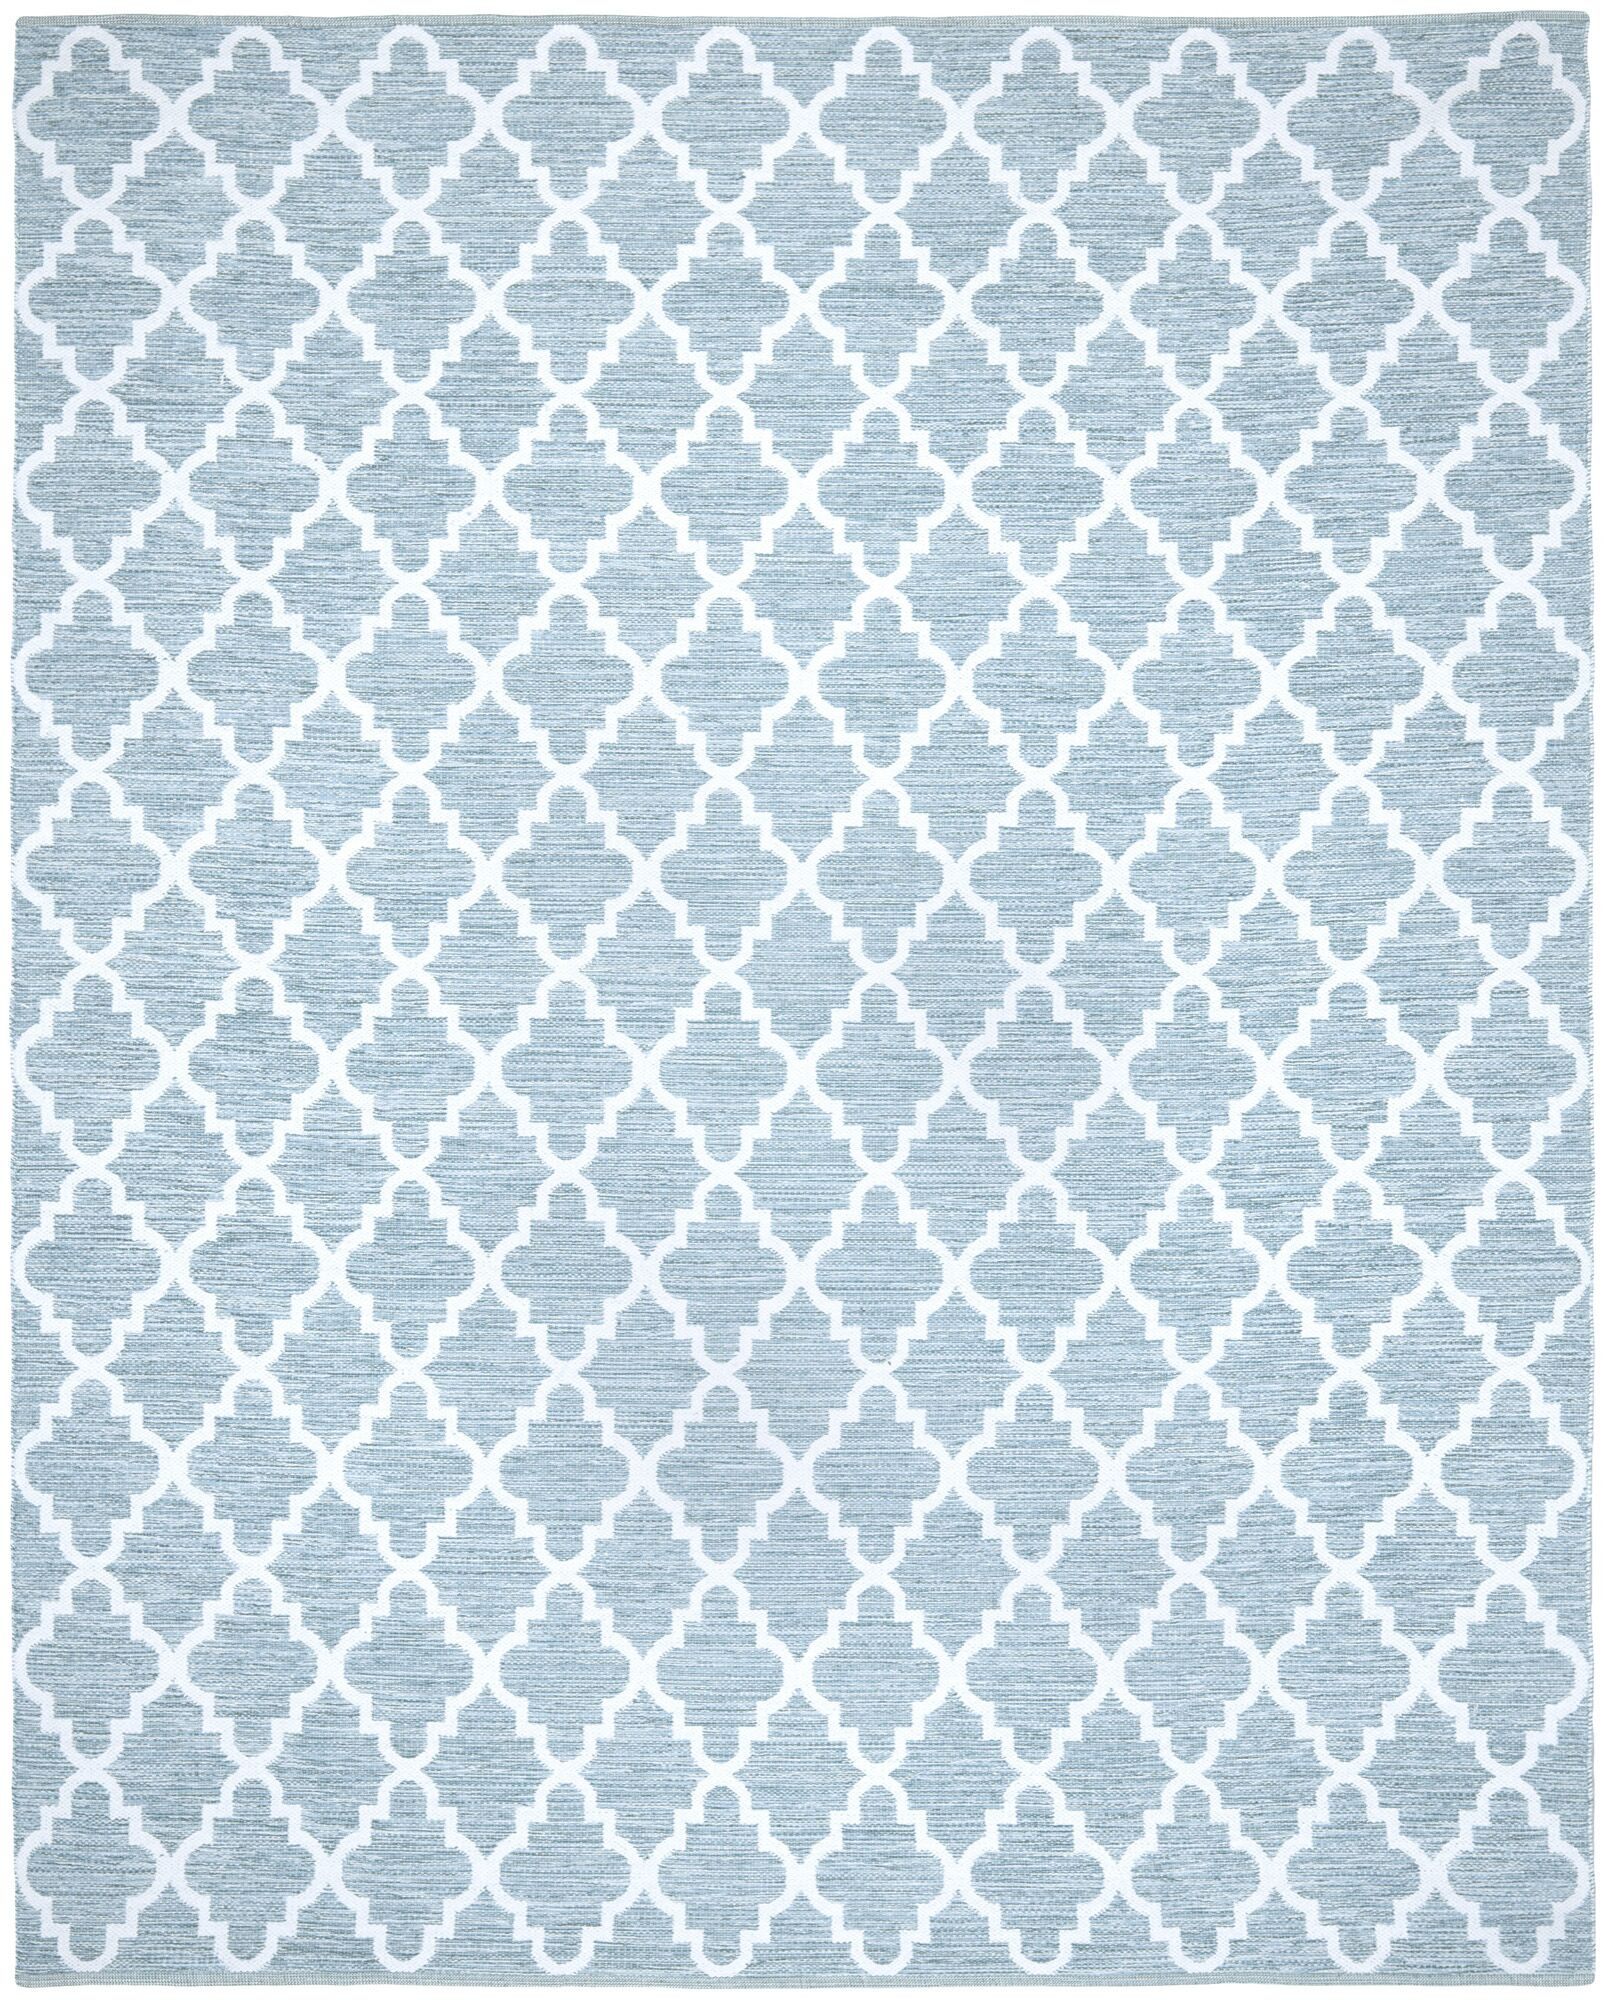 Valley Hand-Woven Light Blue/Ivory Area Rug Rug Size: Rectangle 8' x 10'